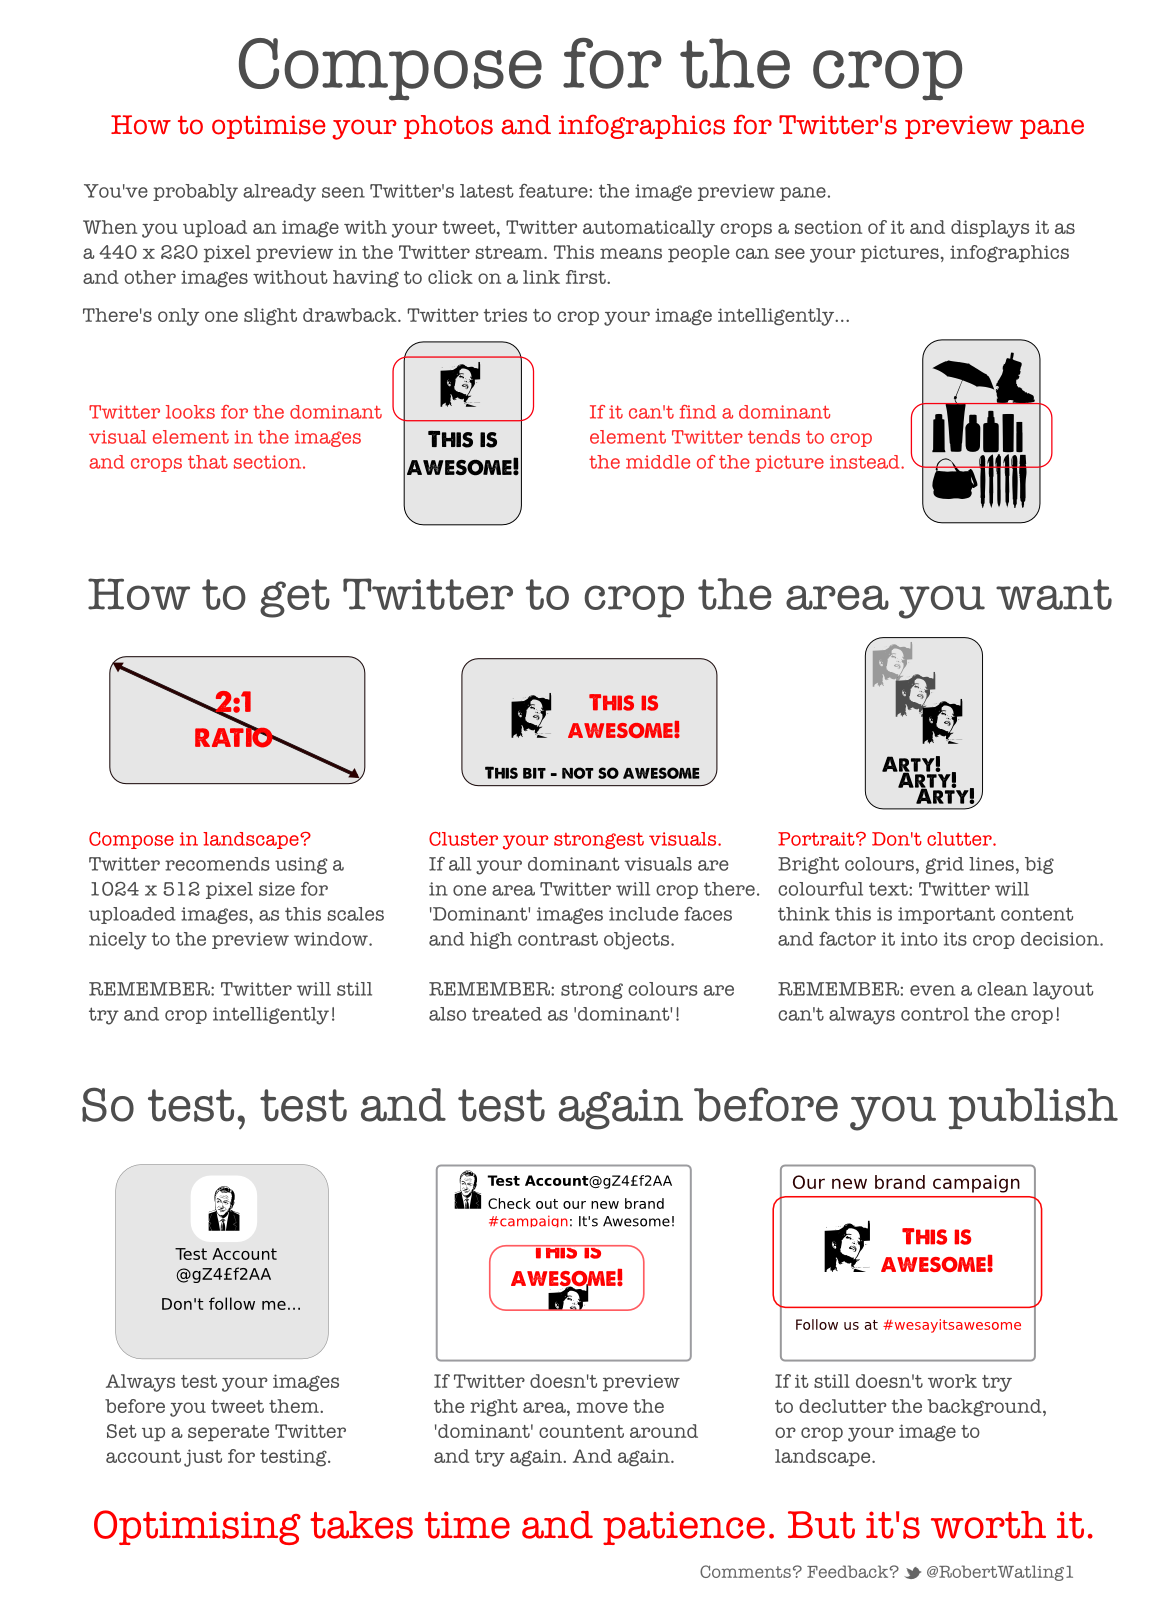 How To Optimize Your Photos And Infographics For Twitter's Preview Pane